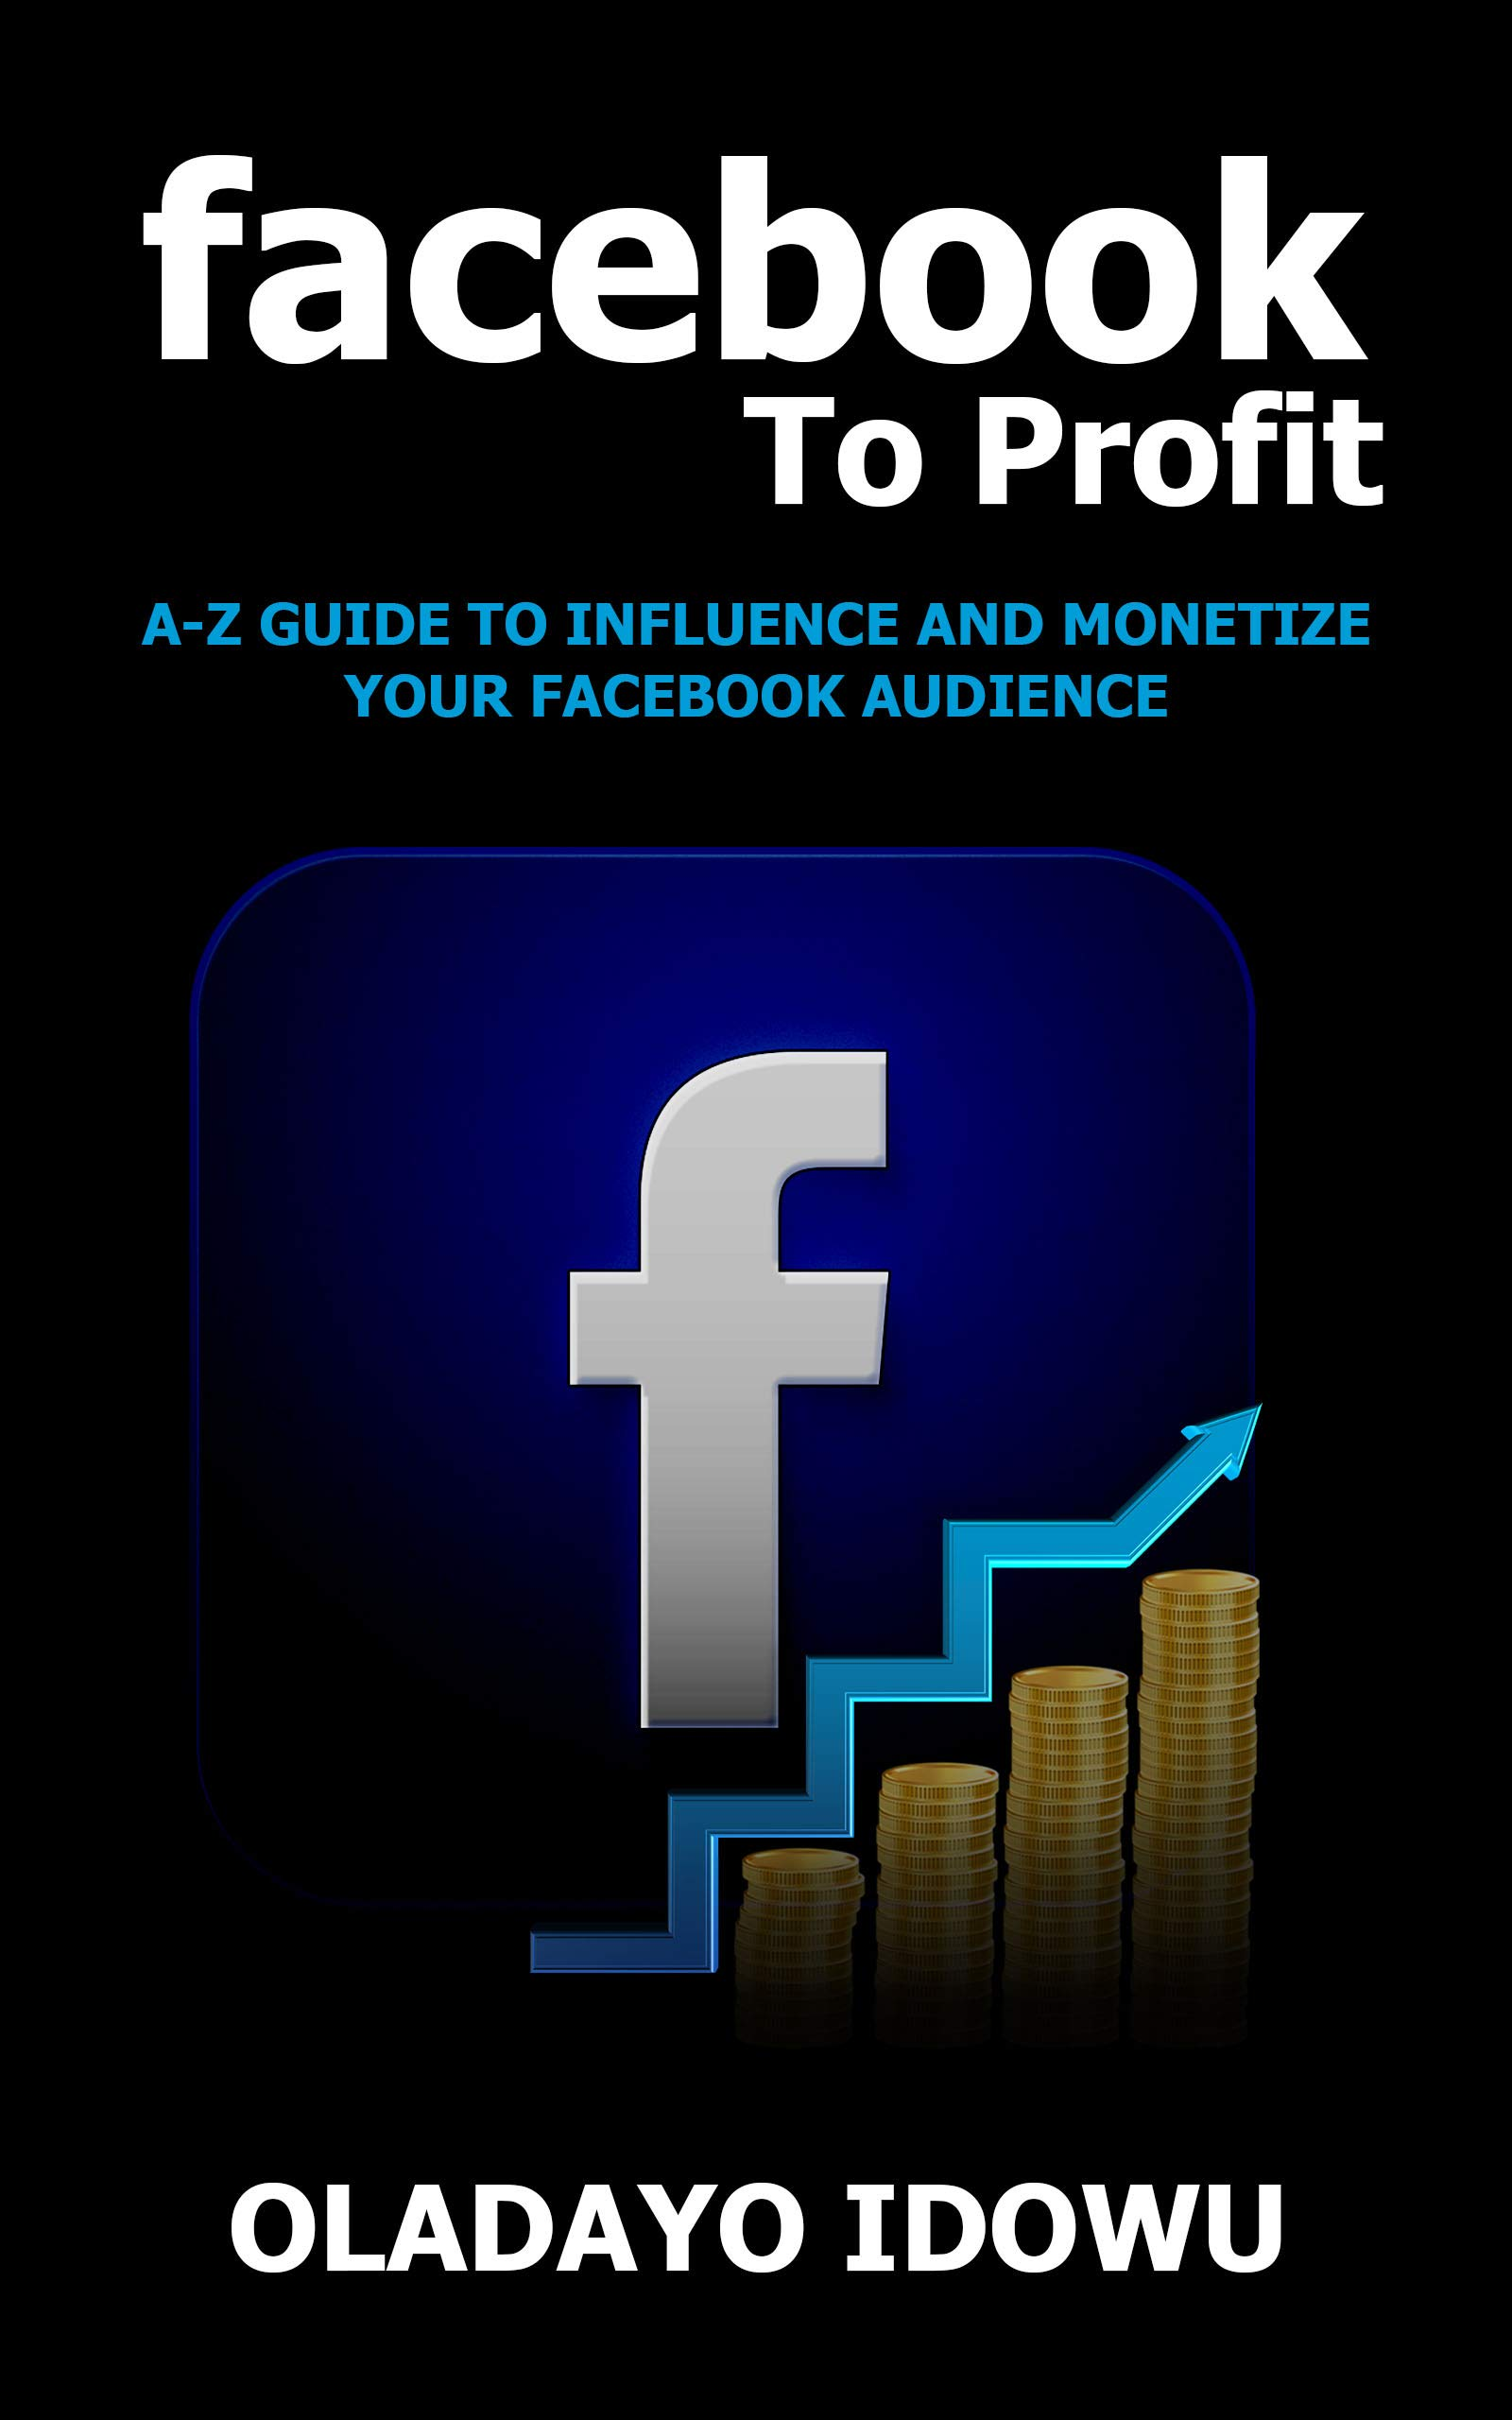 Facebook To Profit: A-Z Guide To Influence And Monetize Your Facebook Audience